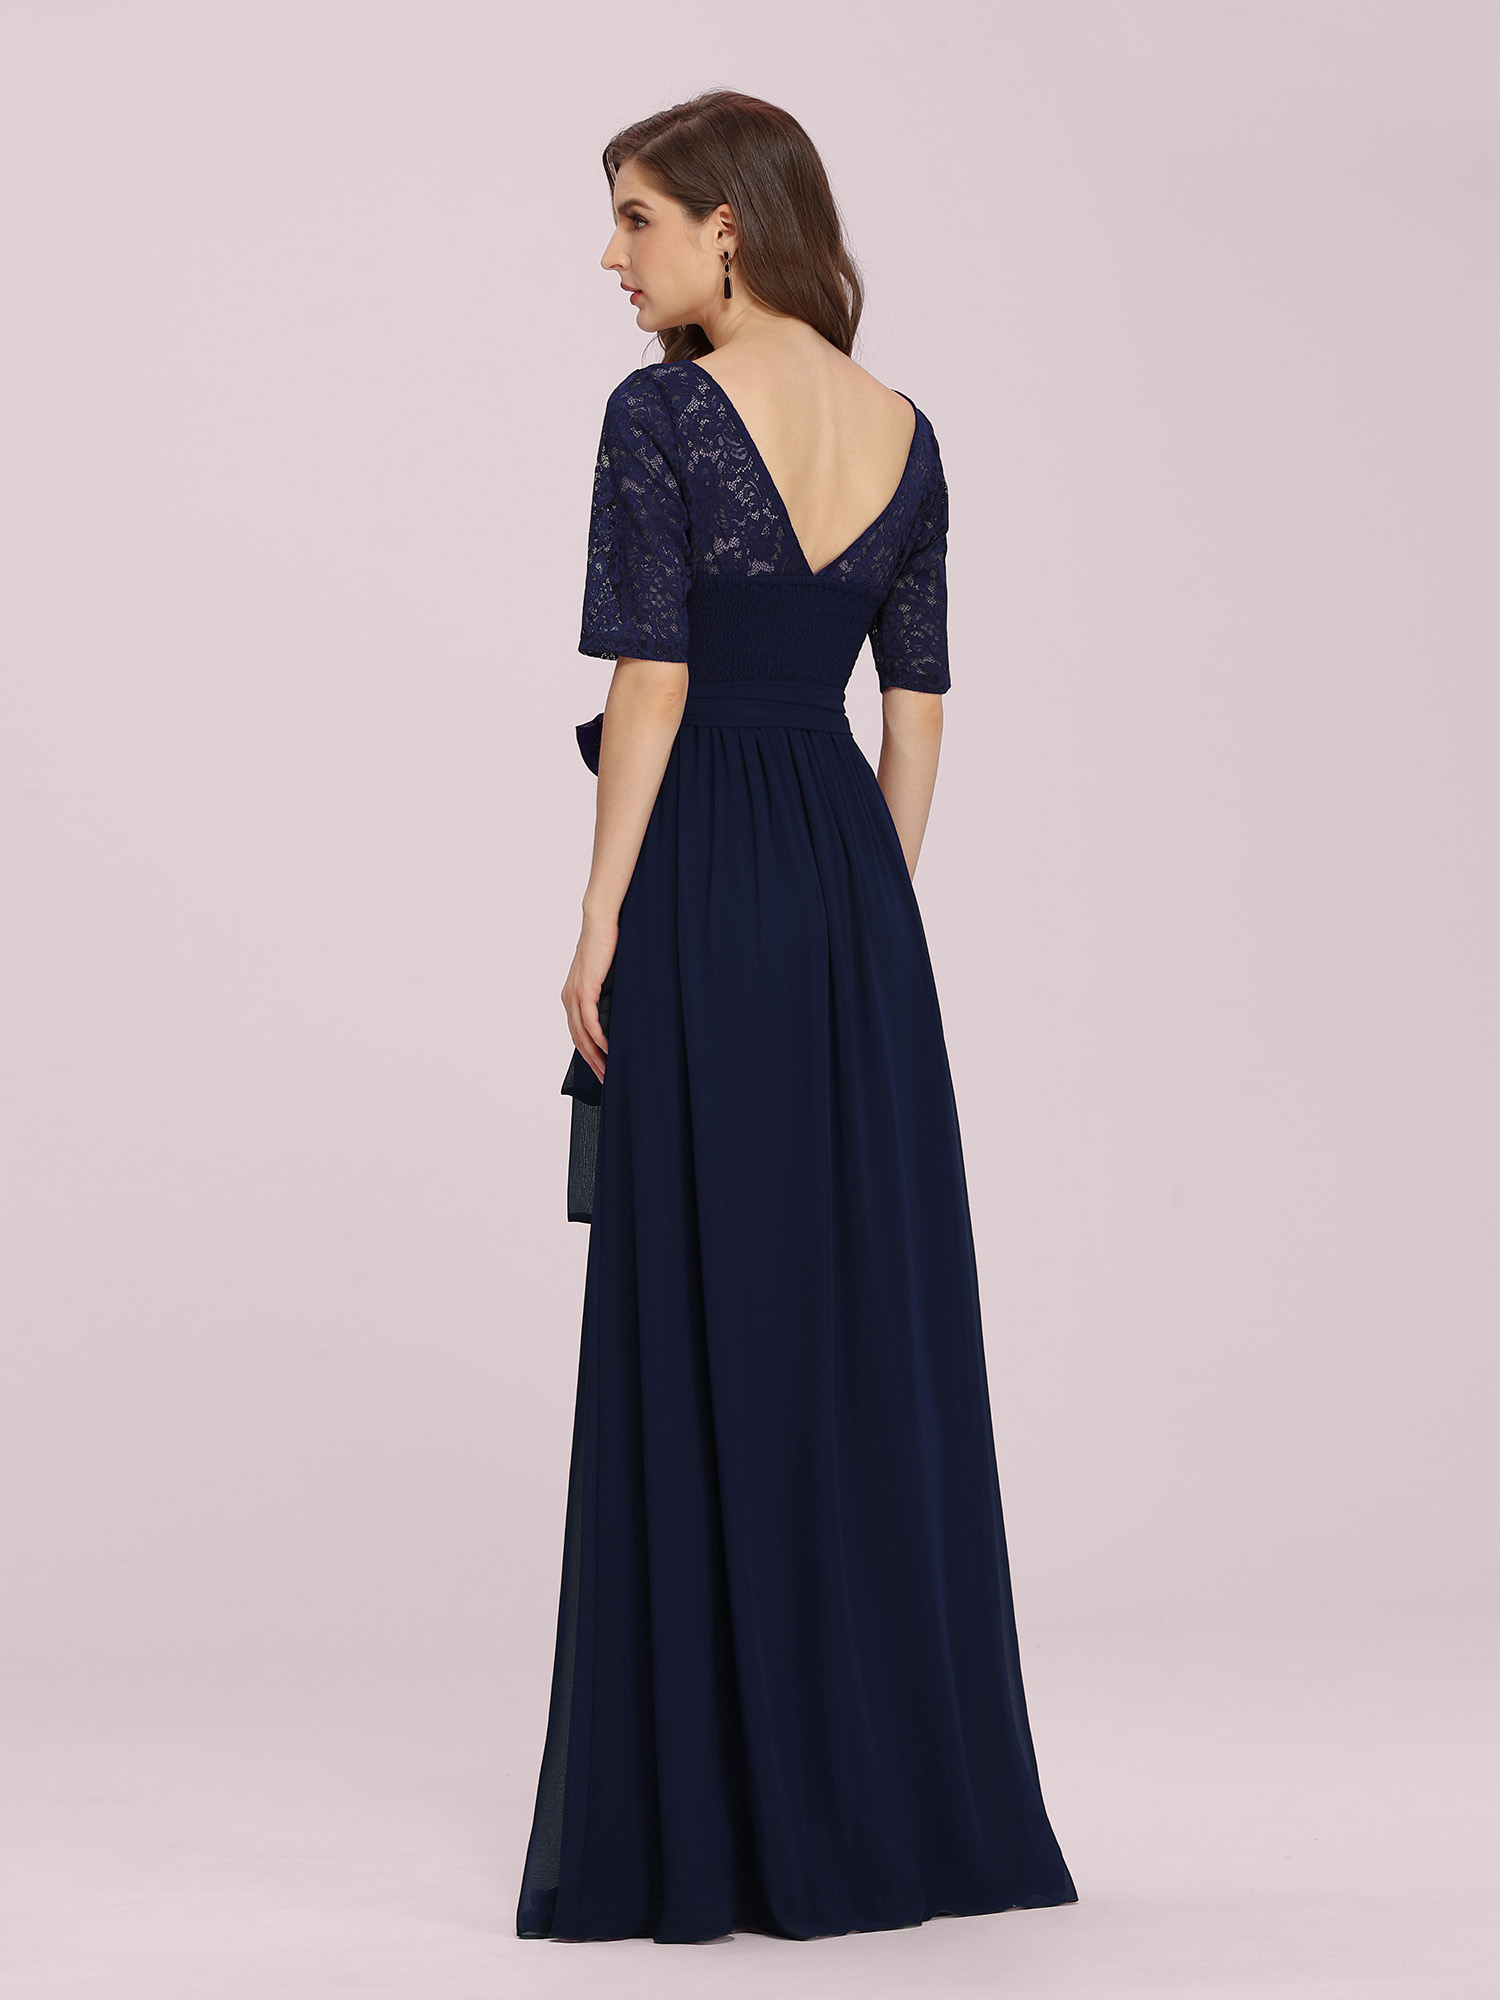 Ever-Pretty-Plus-Size-Lace-Mother-Of-the-Bride-Dresses-Long-Evening-Dress-07624